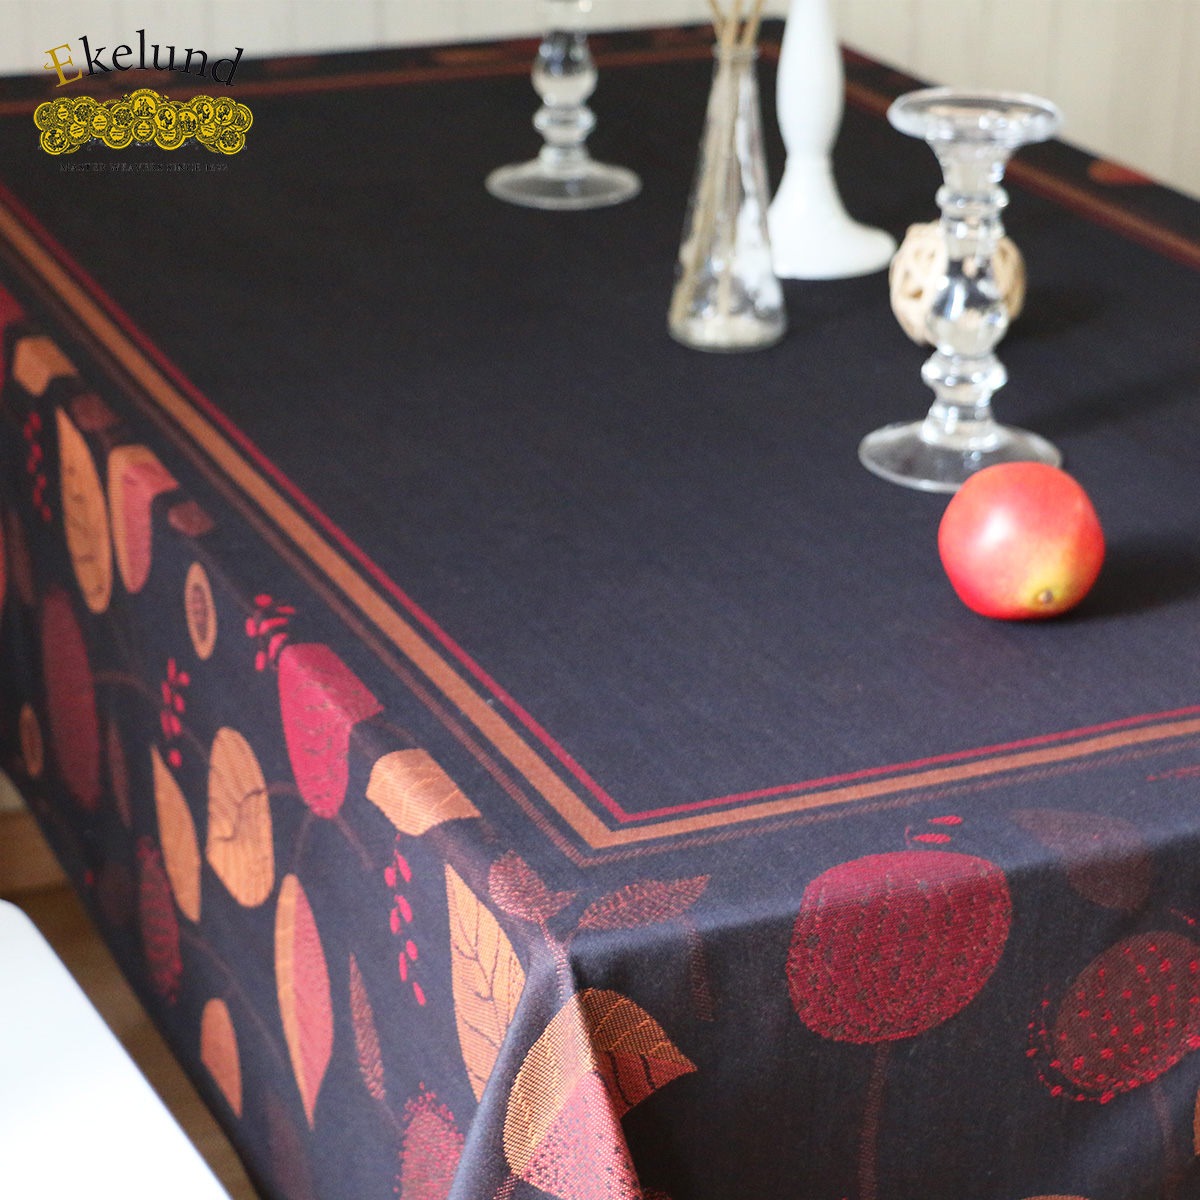 Swedish Ekelund Love Coach Knight Black Suit European Pastoral Coffee Table Cloth  Tablecloth Table Runner Placemats